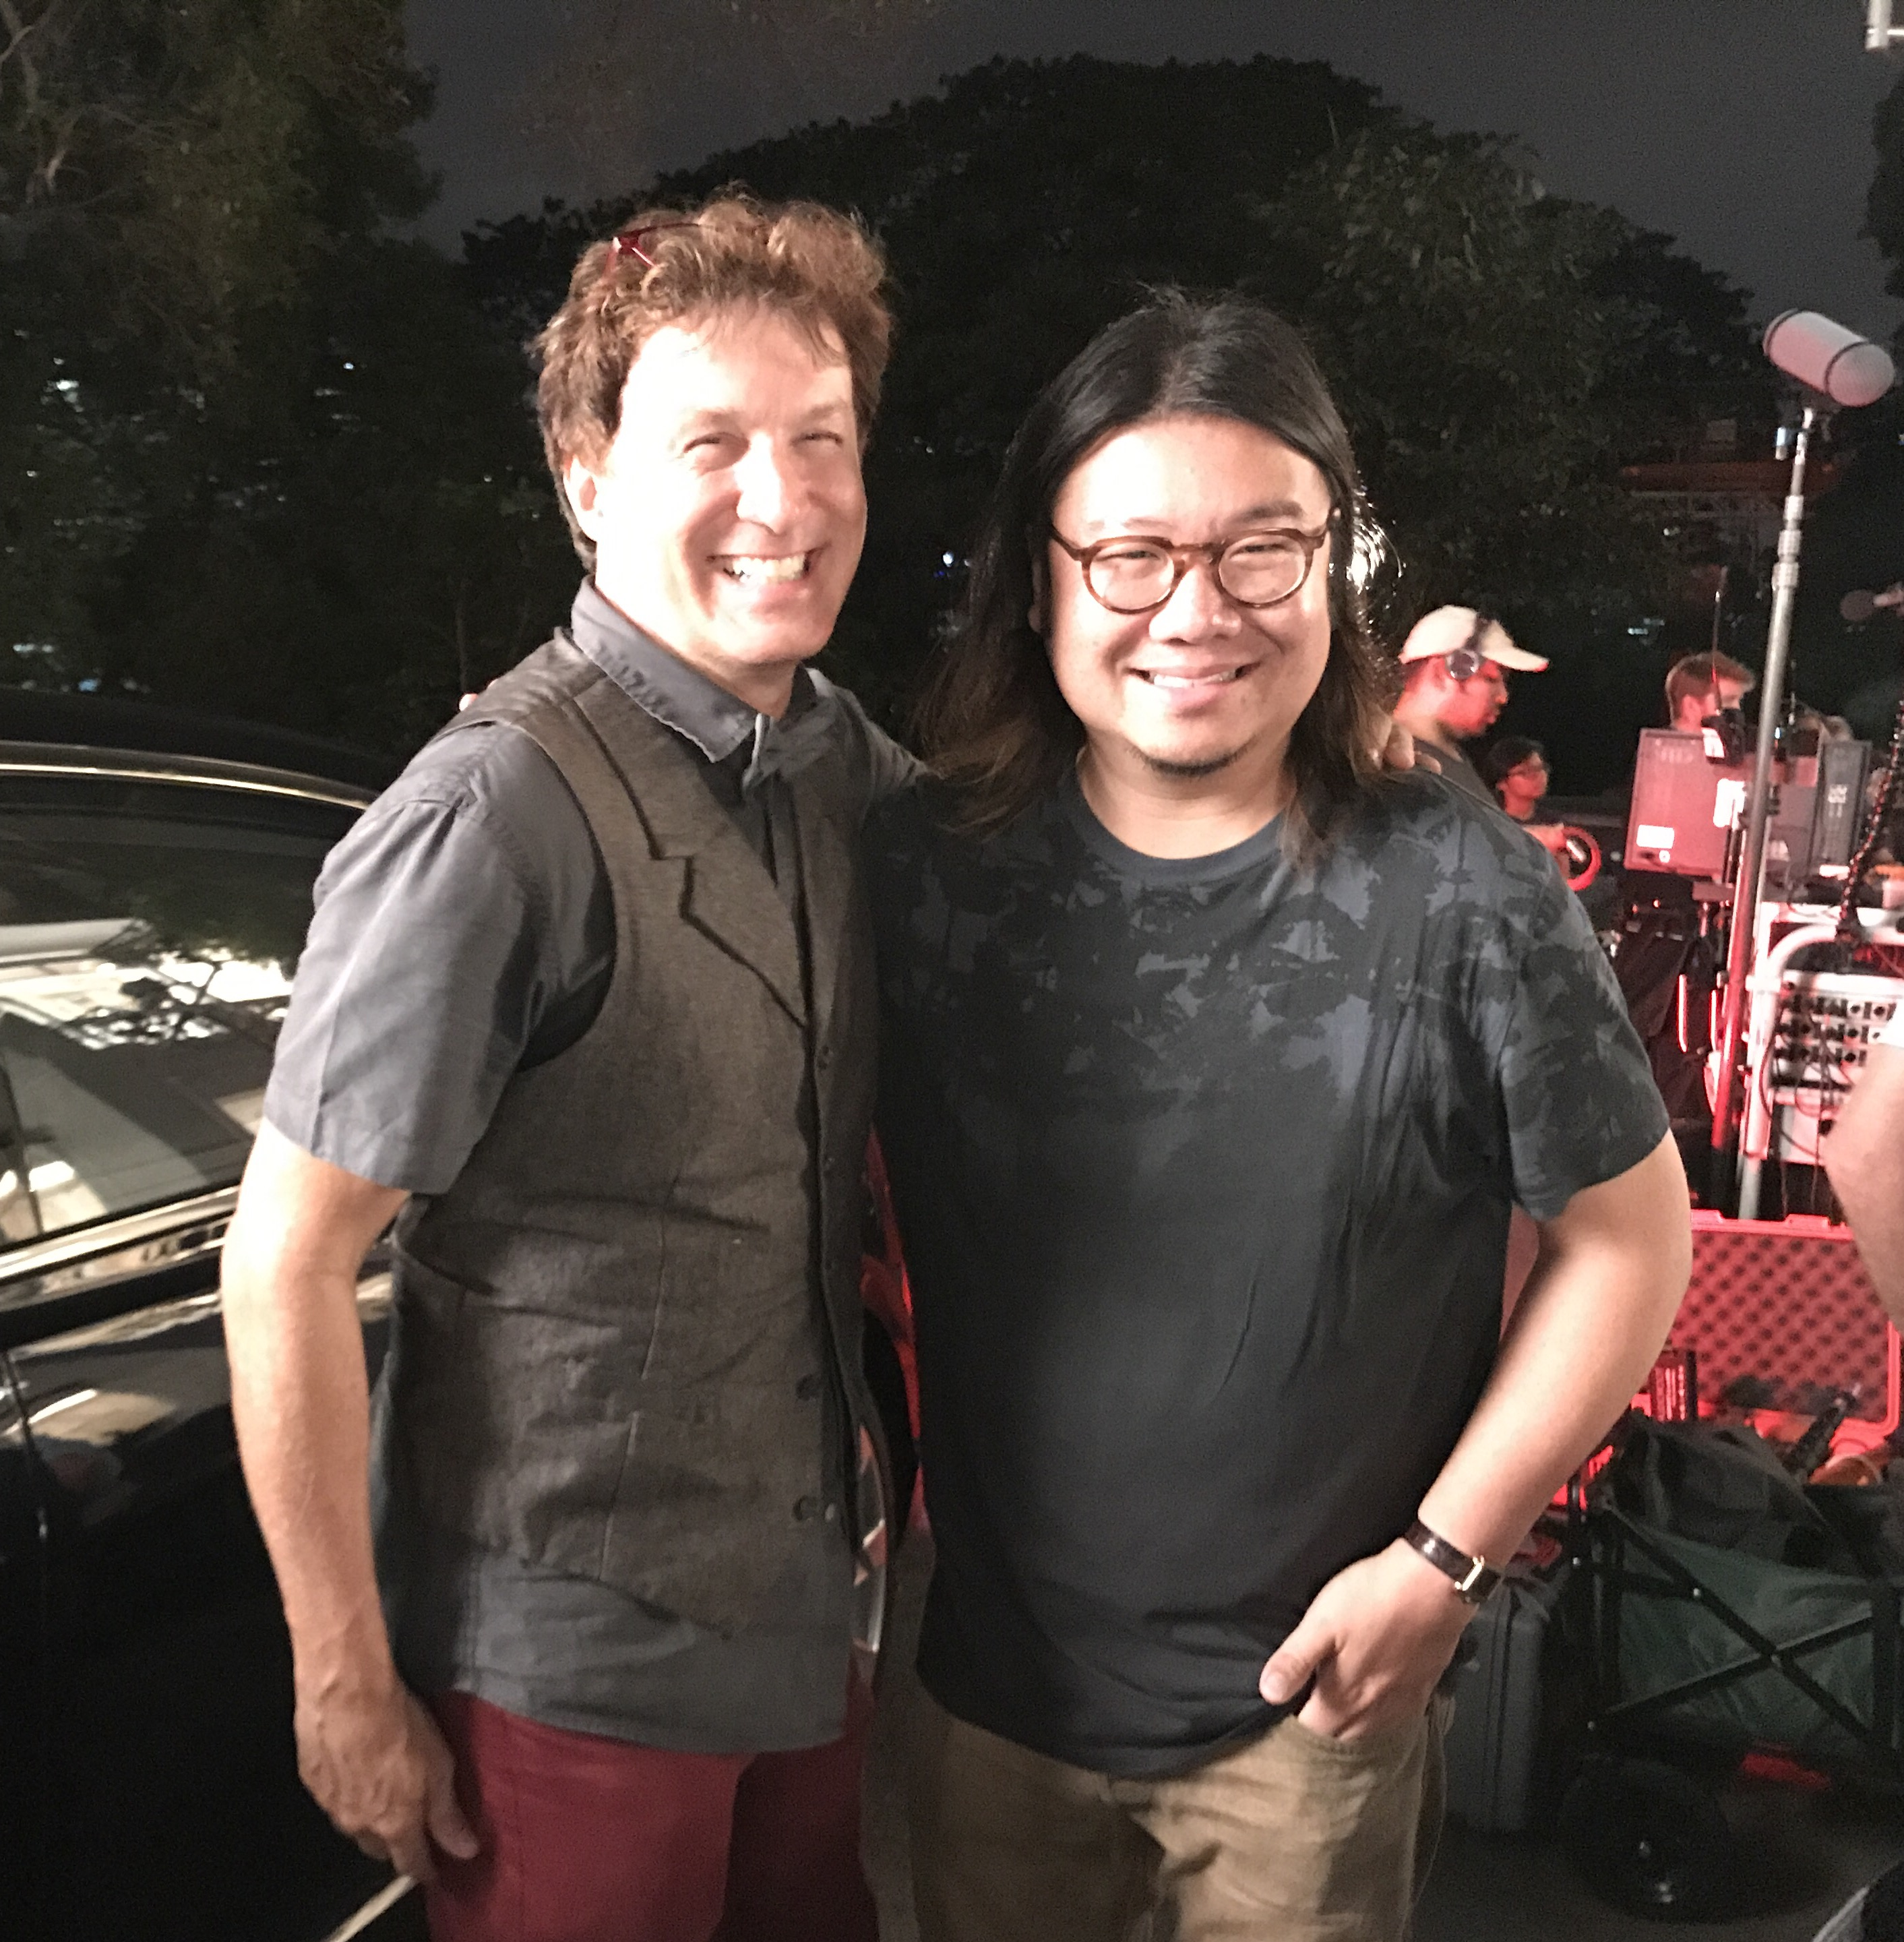 Nelson Coates & Crazy Rich Asians author Kevin Kwan on the set in Kuala Lumpur